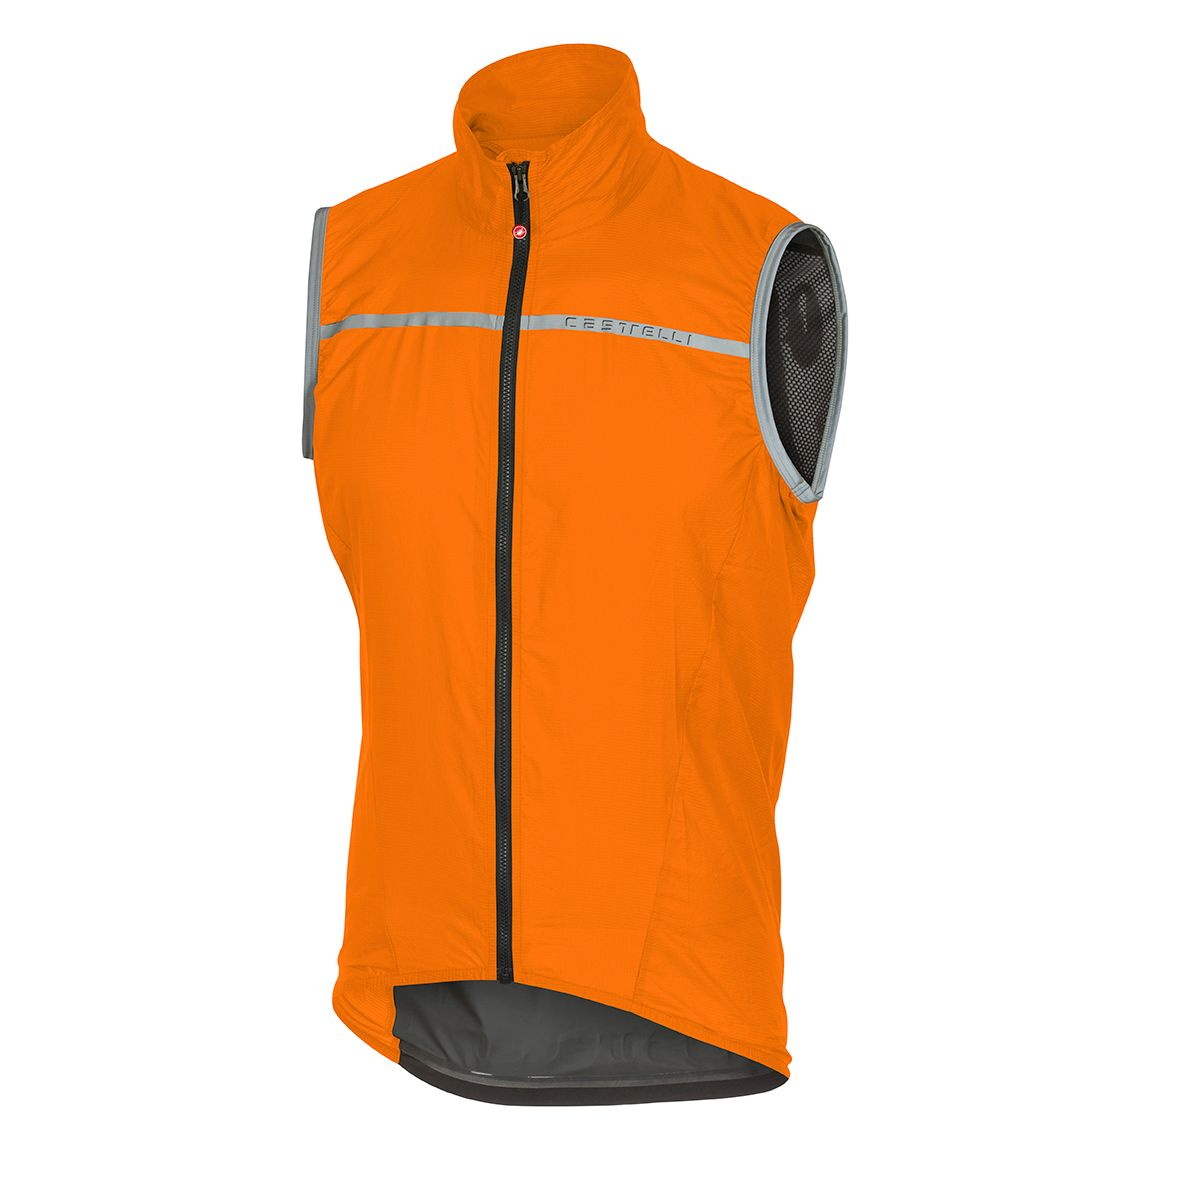 SUPERLEGGERA VEST Herren Windweste